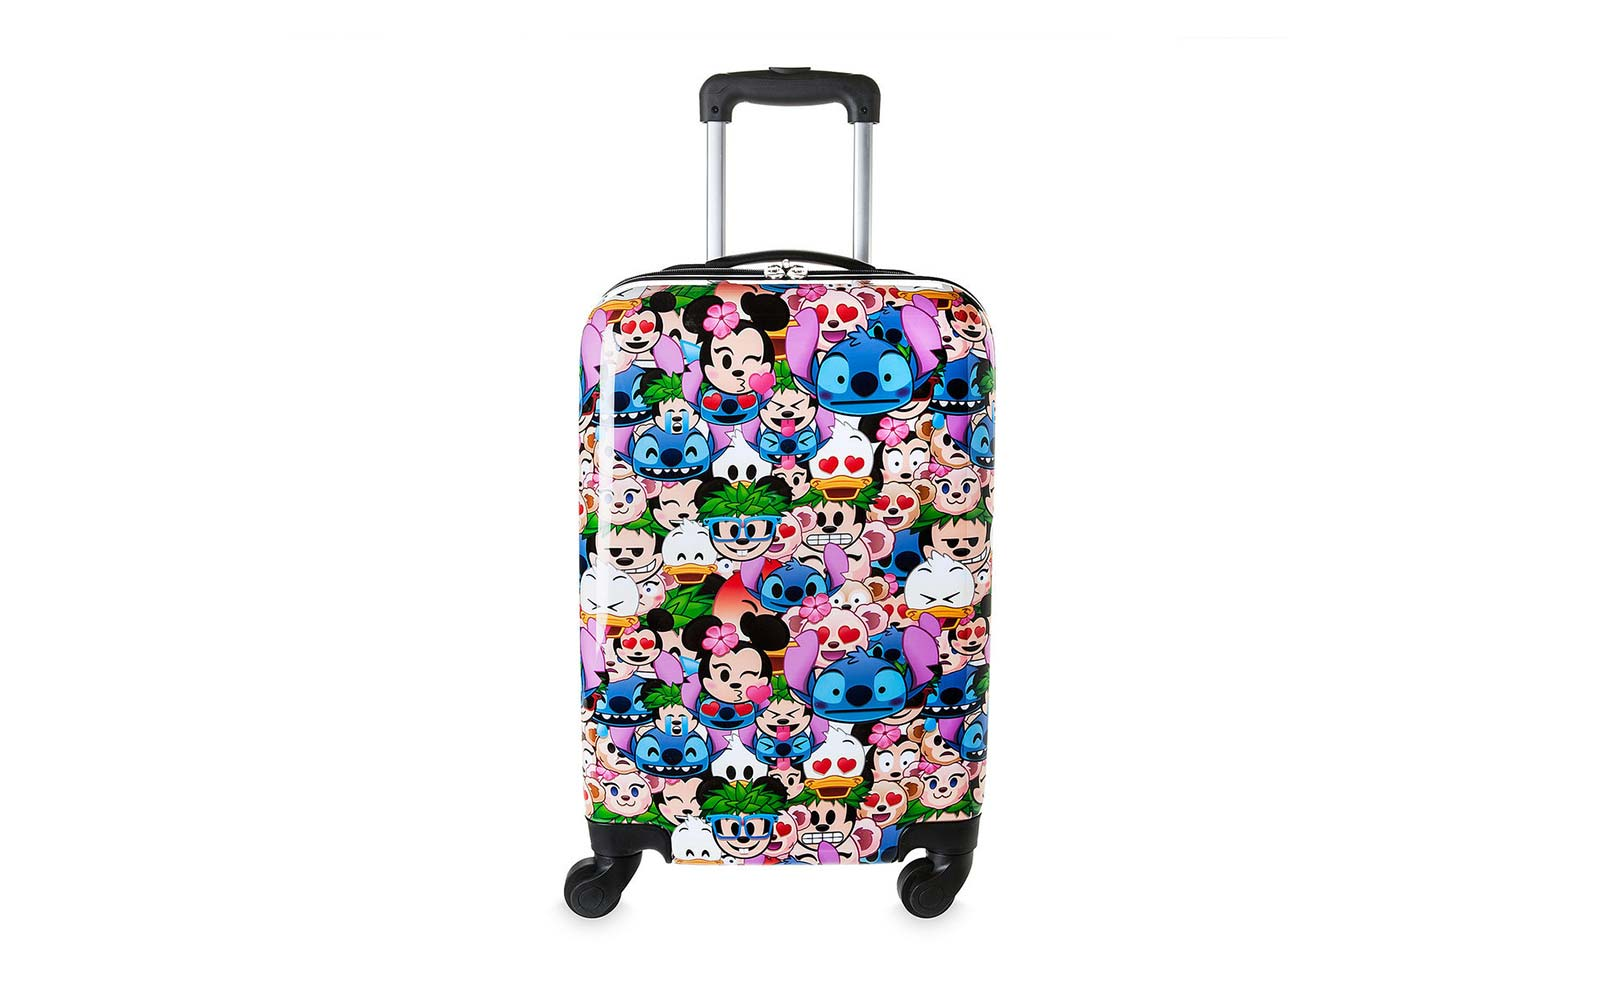 disney emoji character faces rolling luggage suitcase